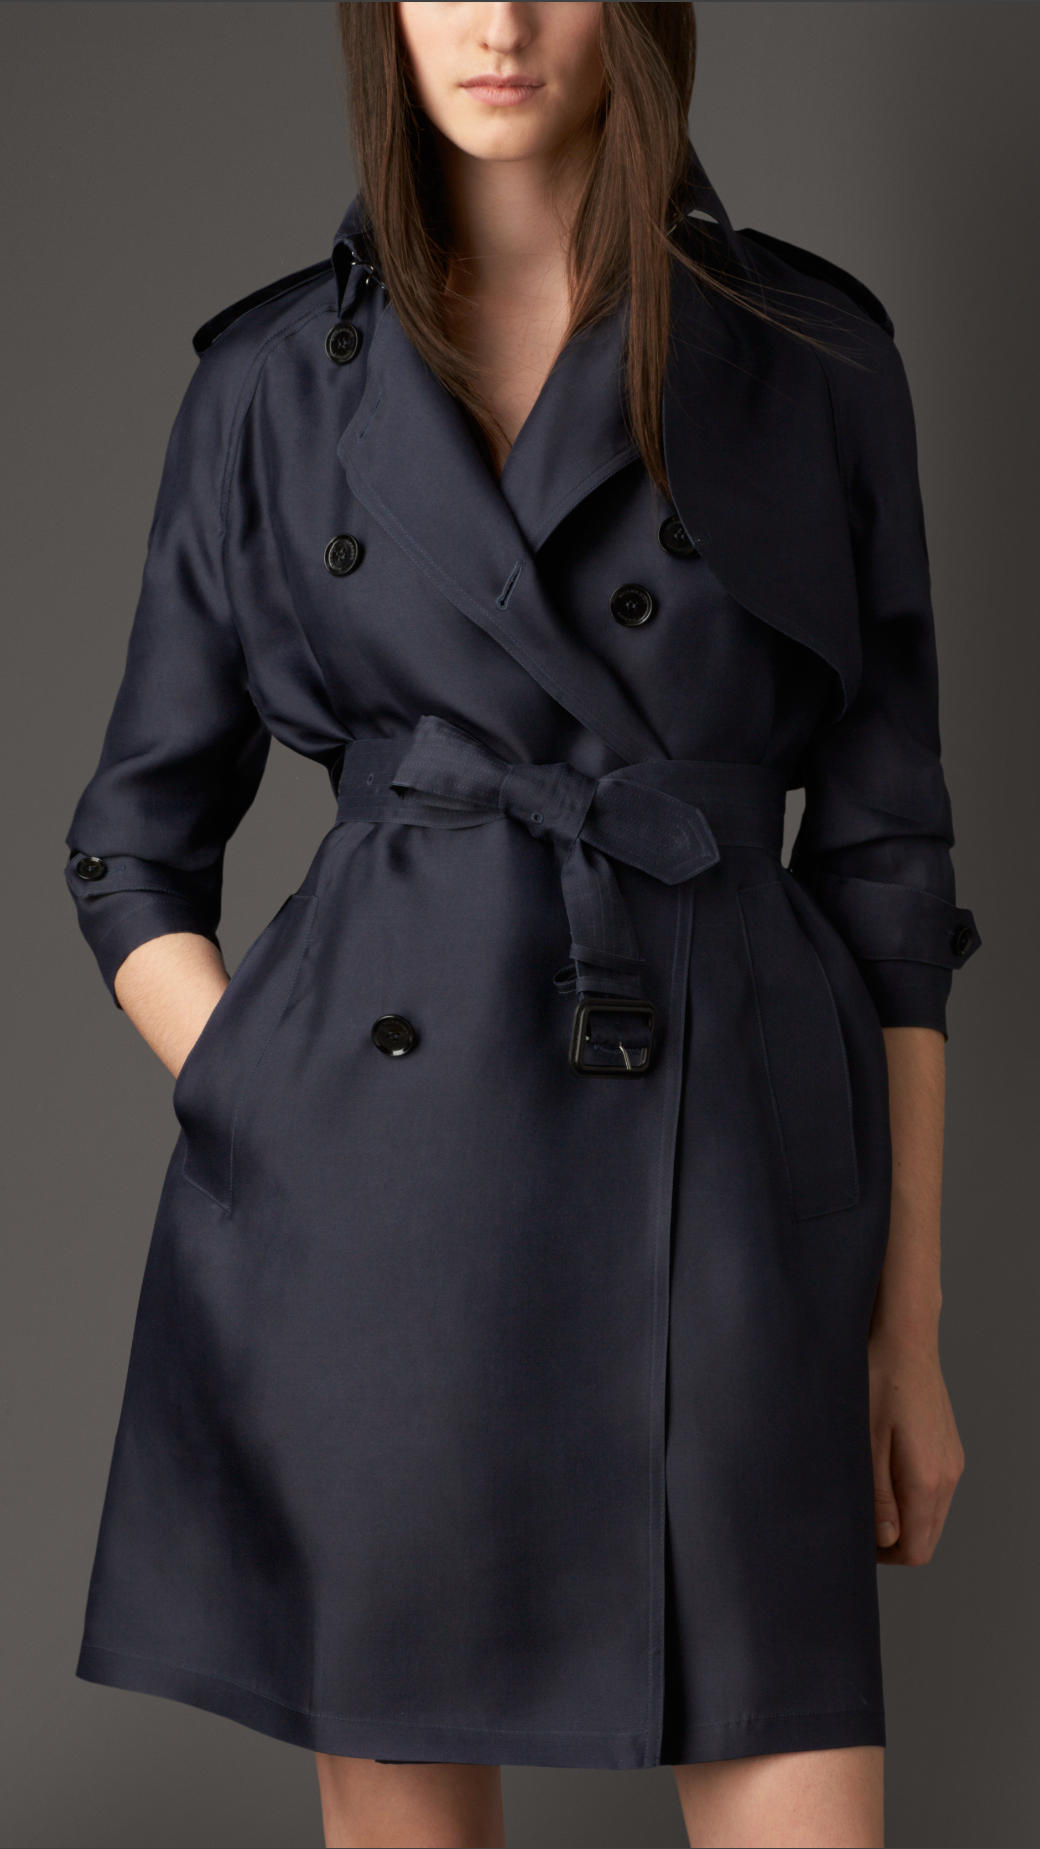 Burberry Väska 2014 : Burberry long showerproof silk trench coat in blue lyst